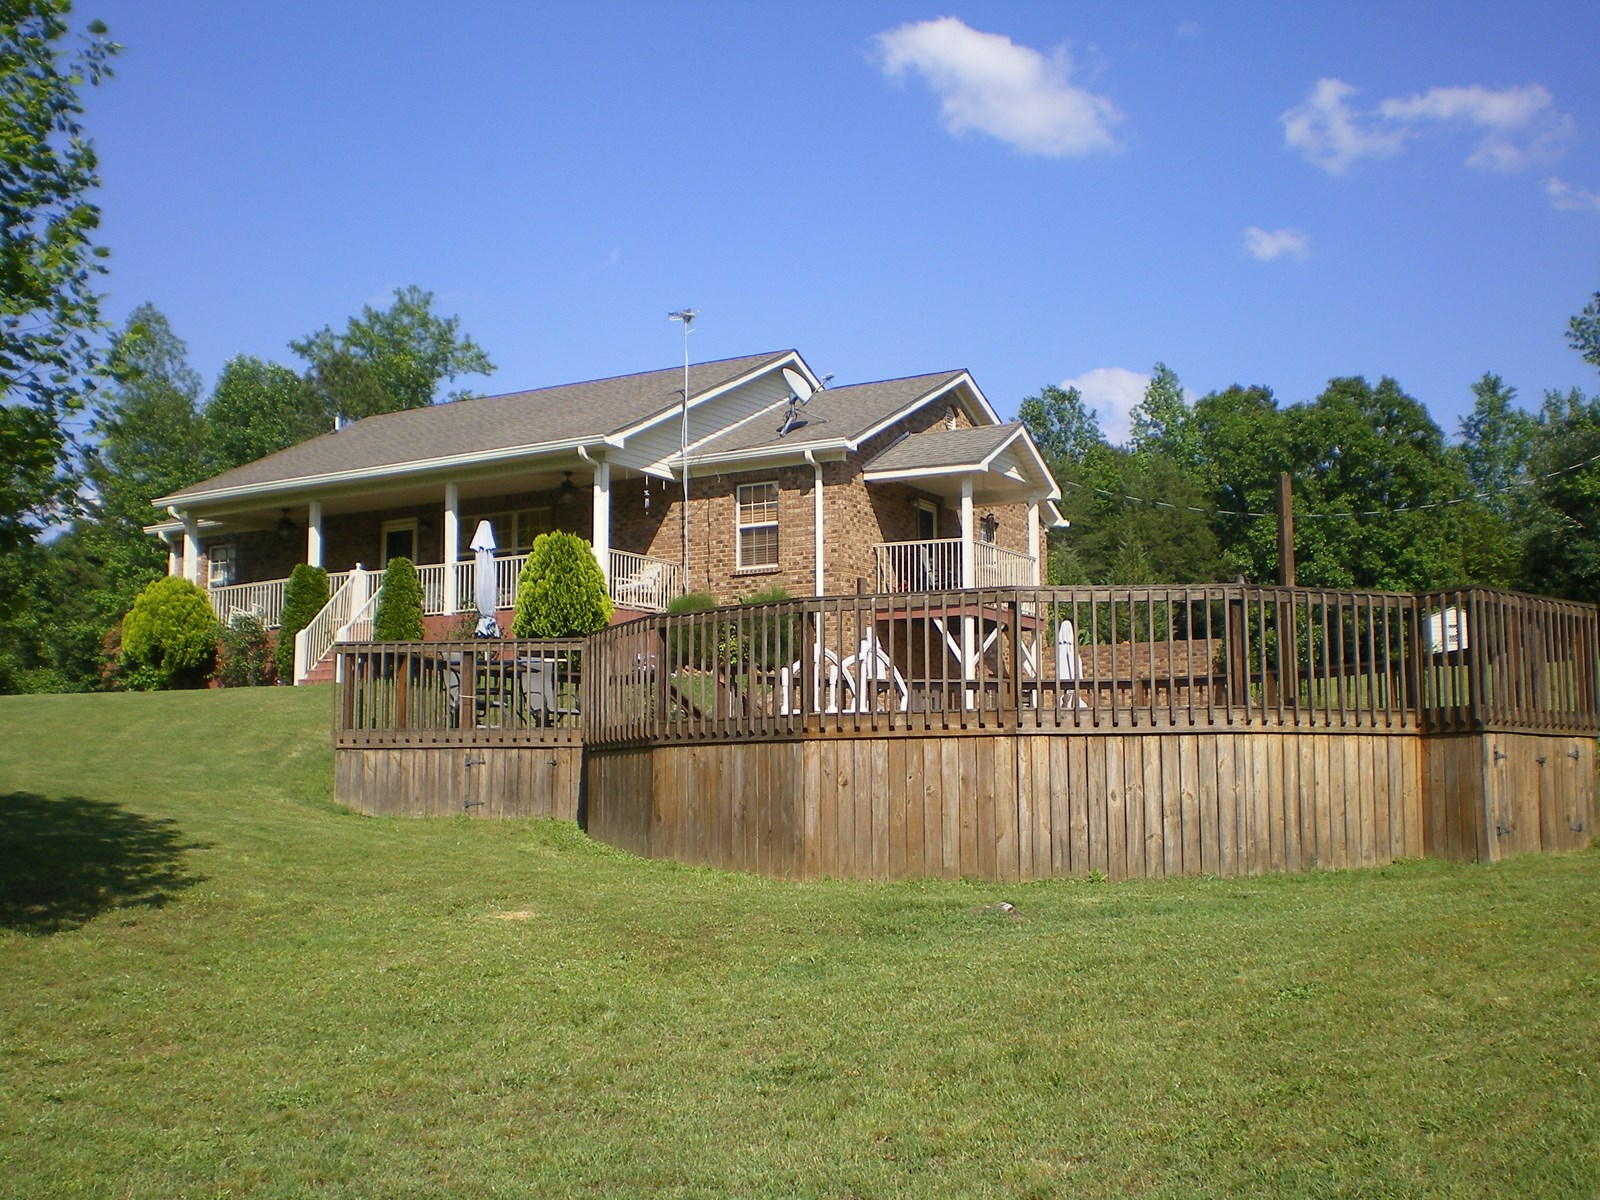 5 BEDROOM TN COUNTRY HOME, POOL, DECK, GUEST HOME